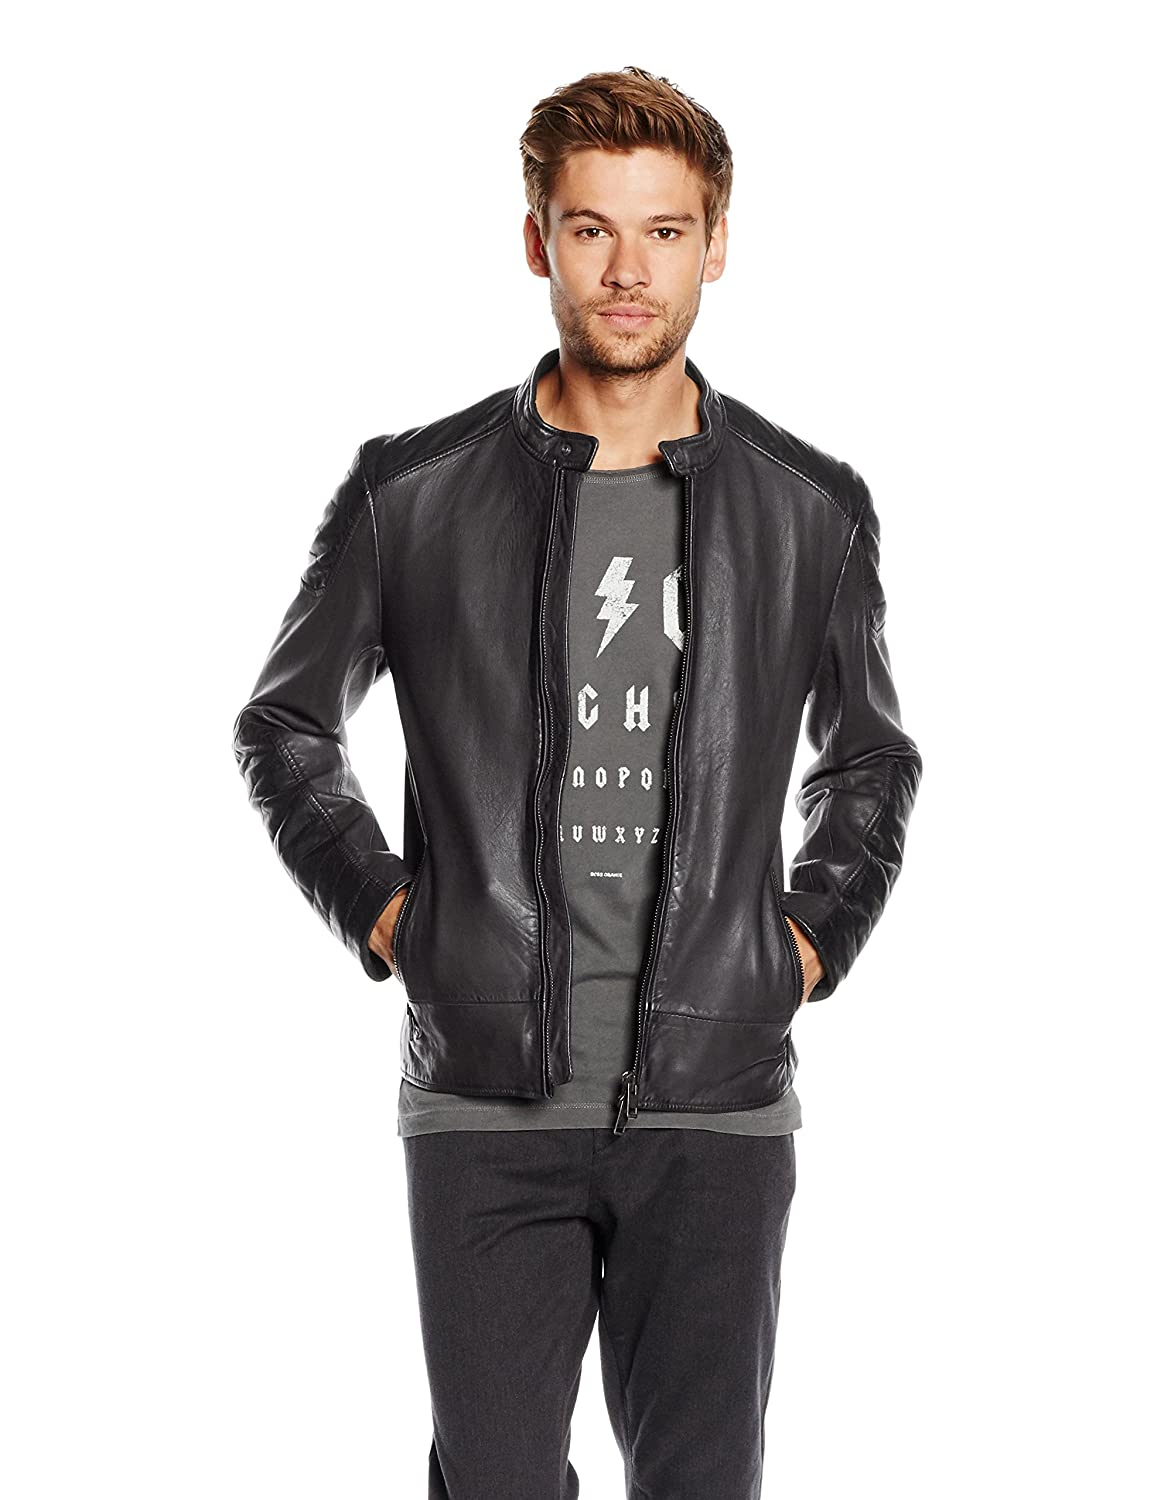 BOSS Orange Jendricks, Chaqueta Hombre, Negro (Black), Small (Talla del fabricante: 48): Amazon.es: Ropa y accesorios